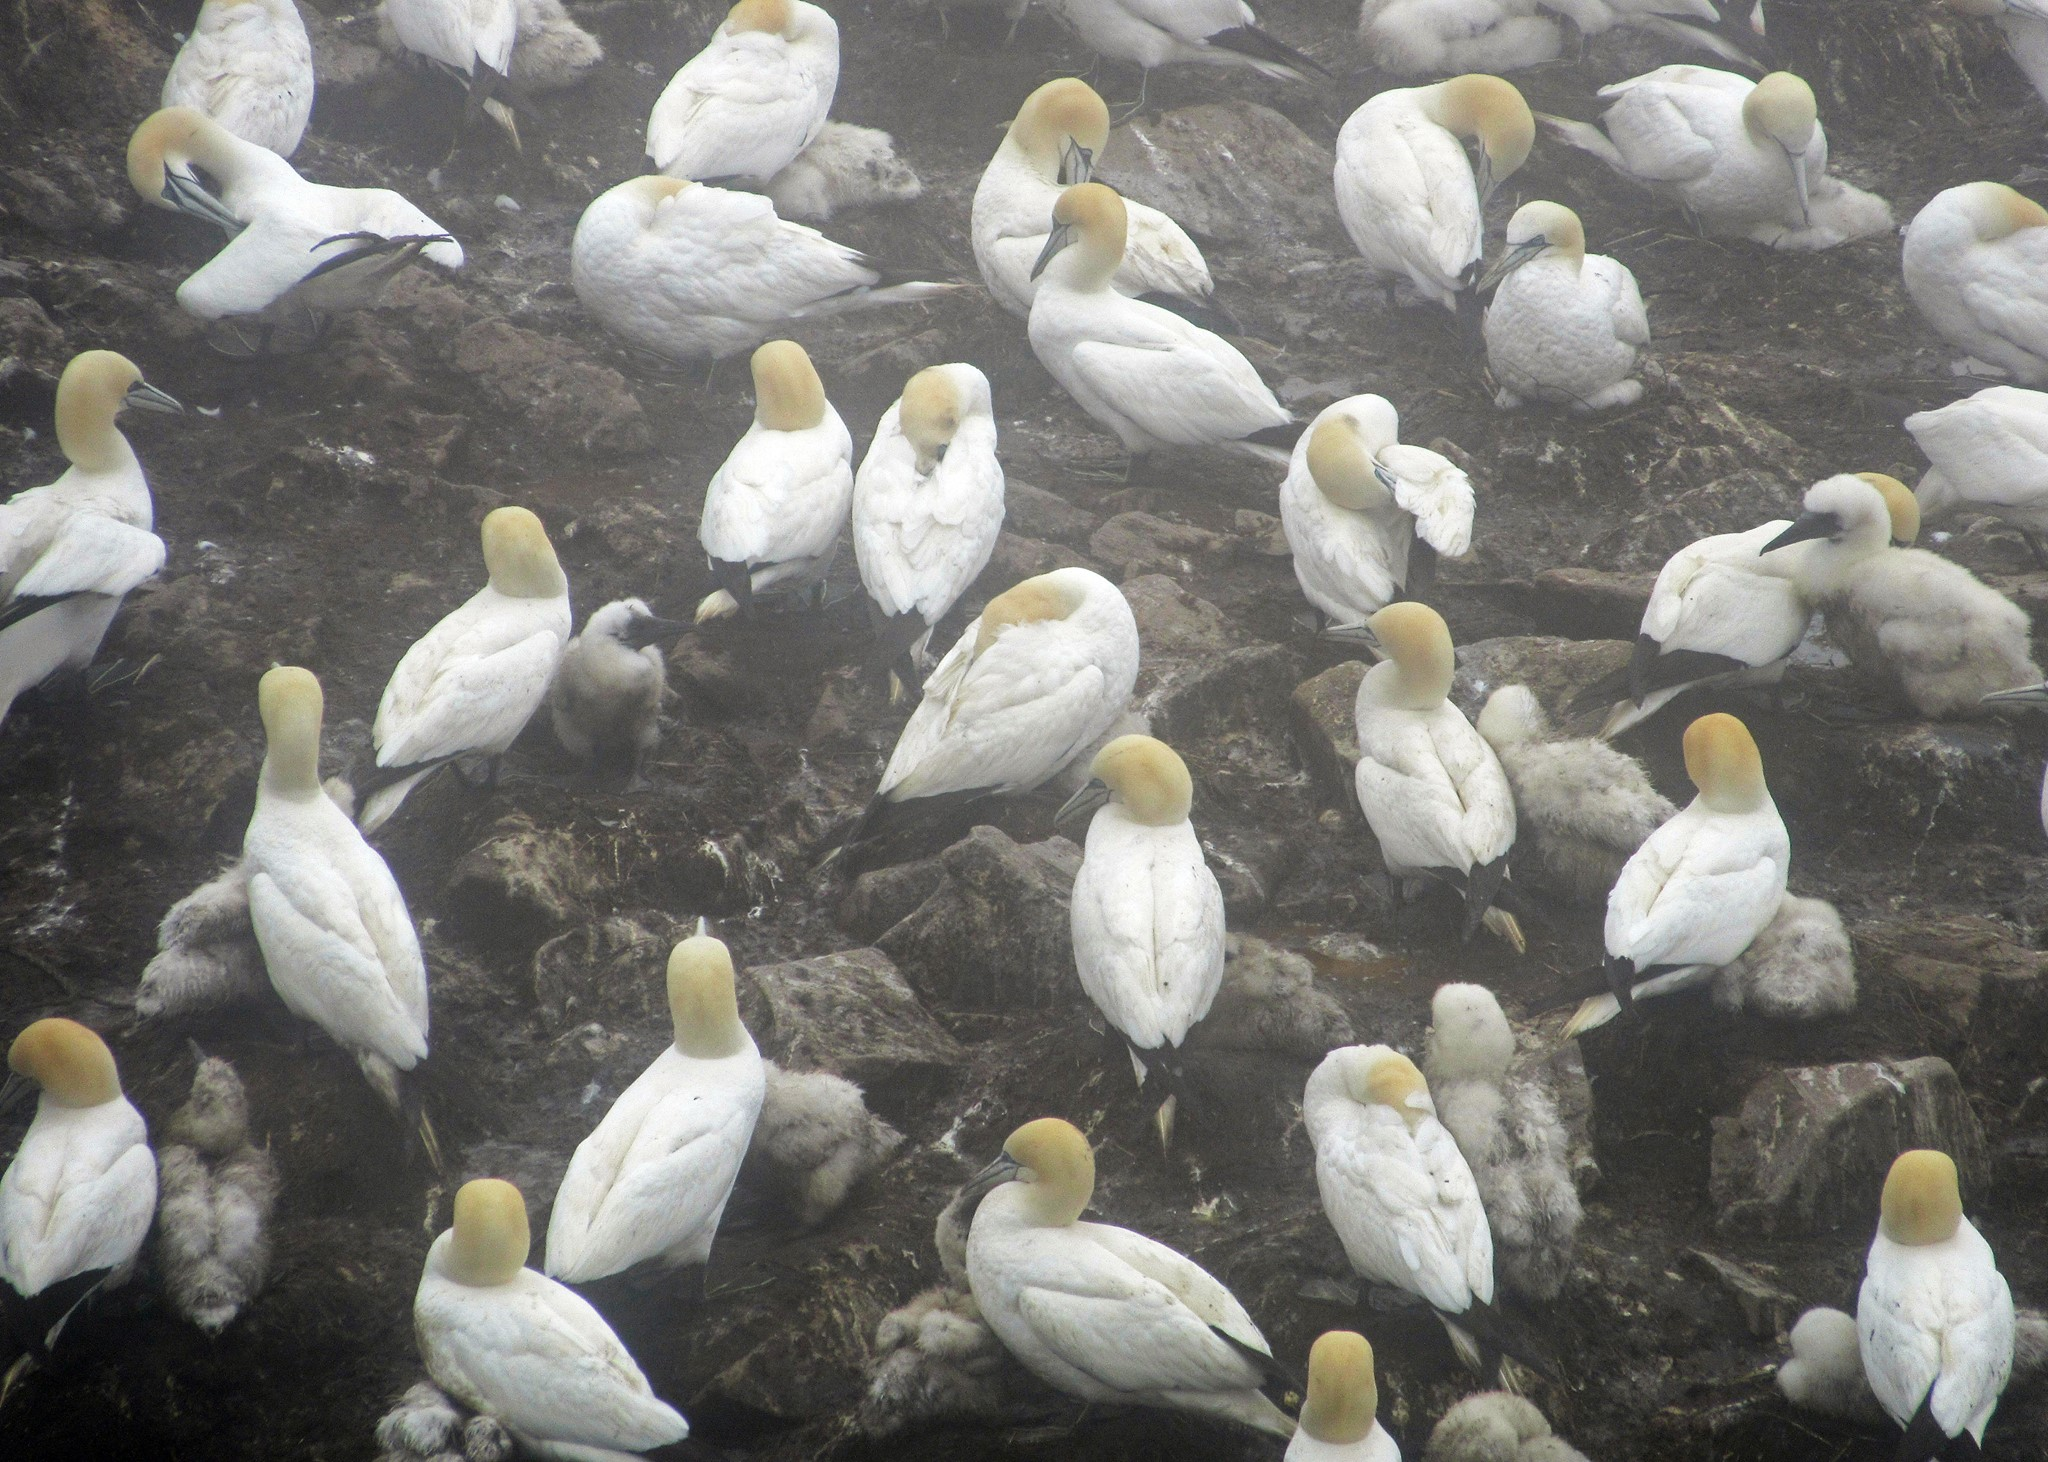 A Northern Gannet nesting colony at an Important Bird Area